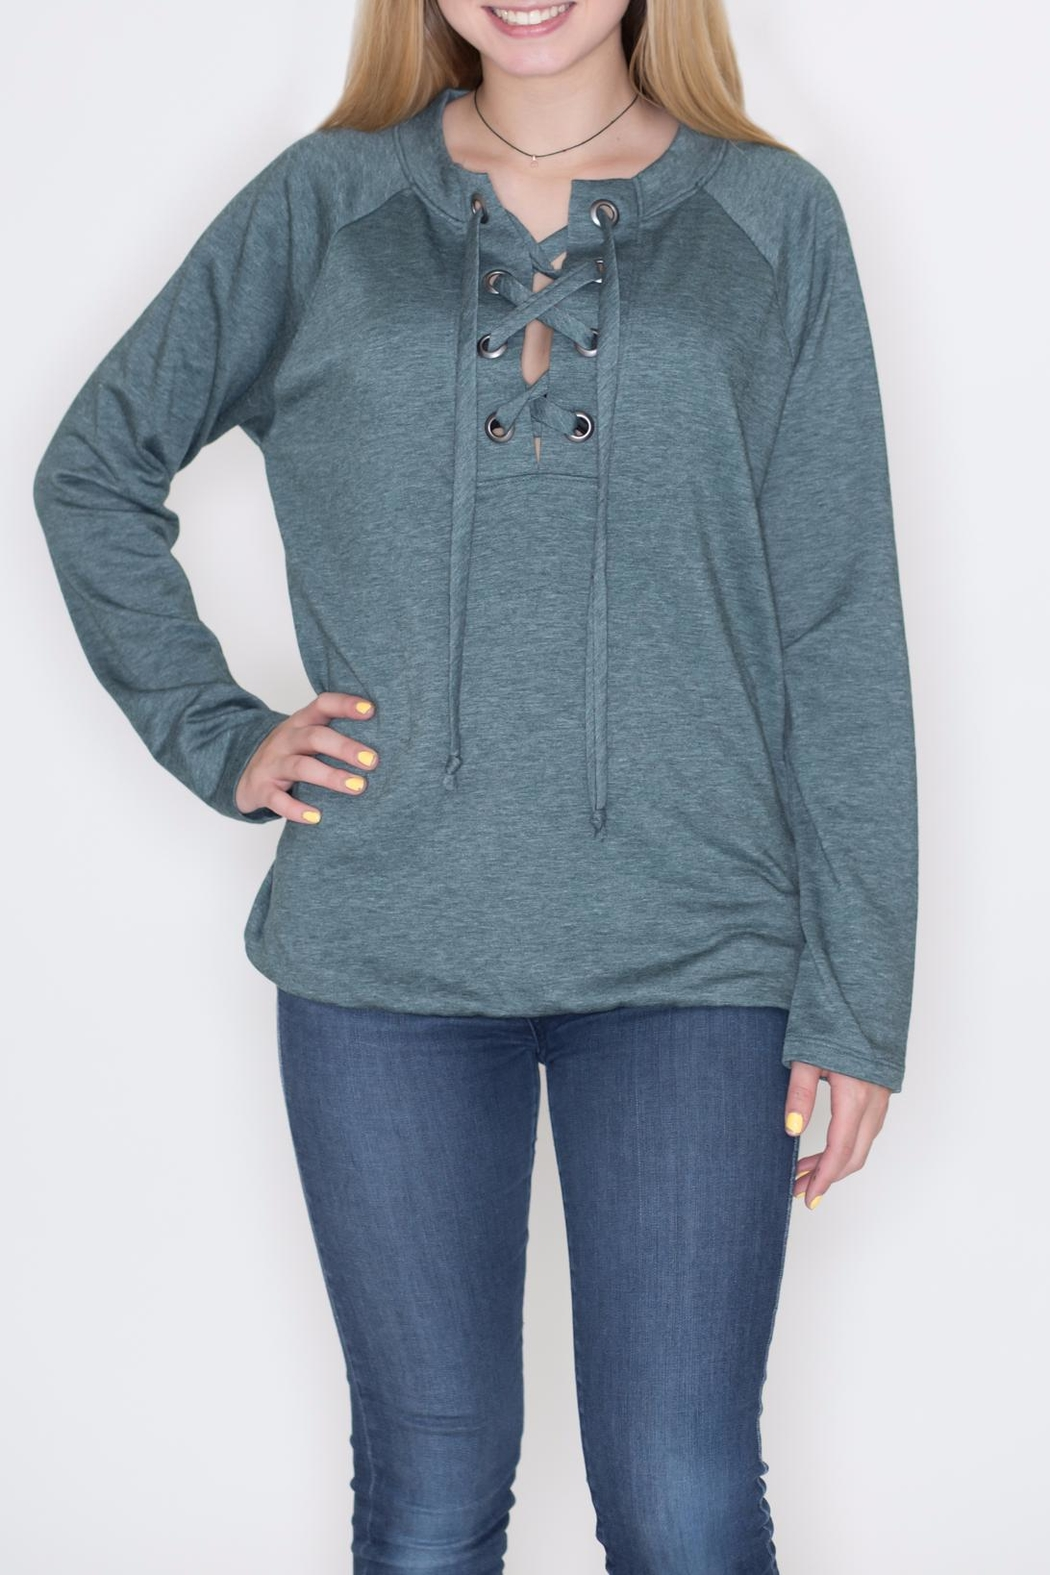 Cherish Lace Up Pullover Top - Main Image